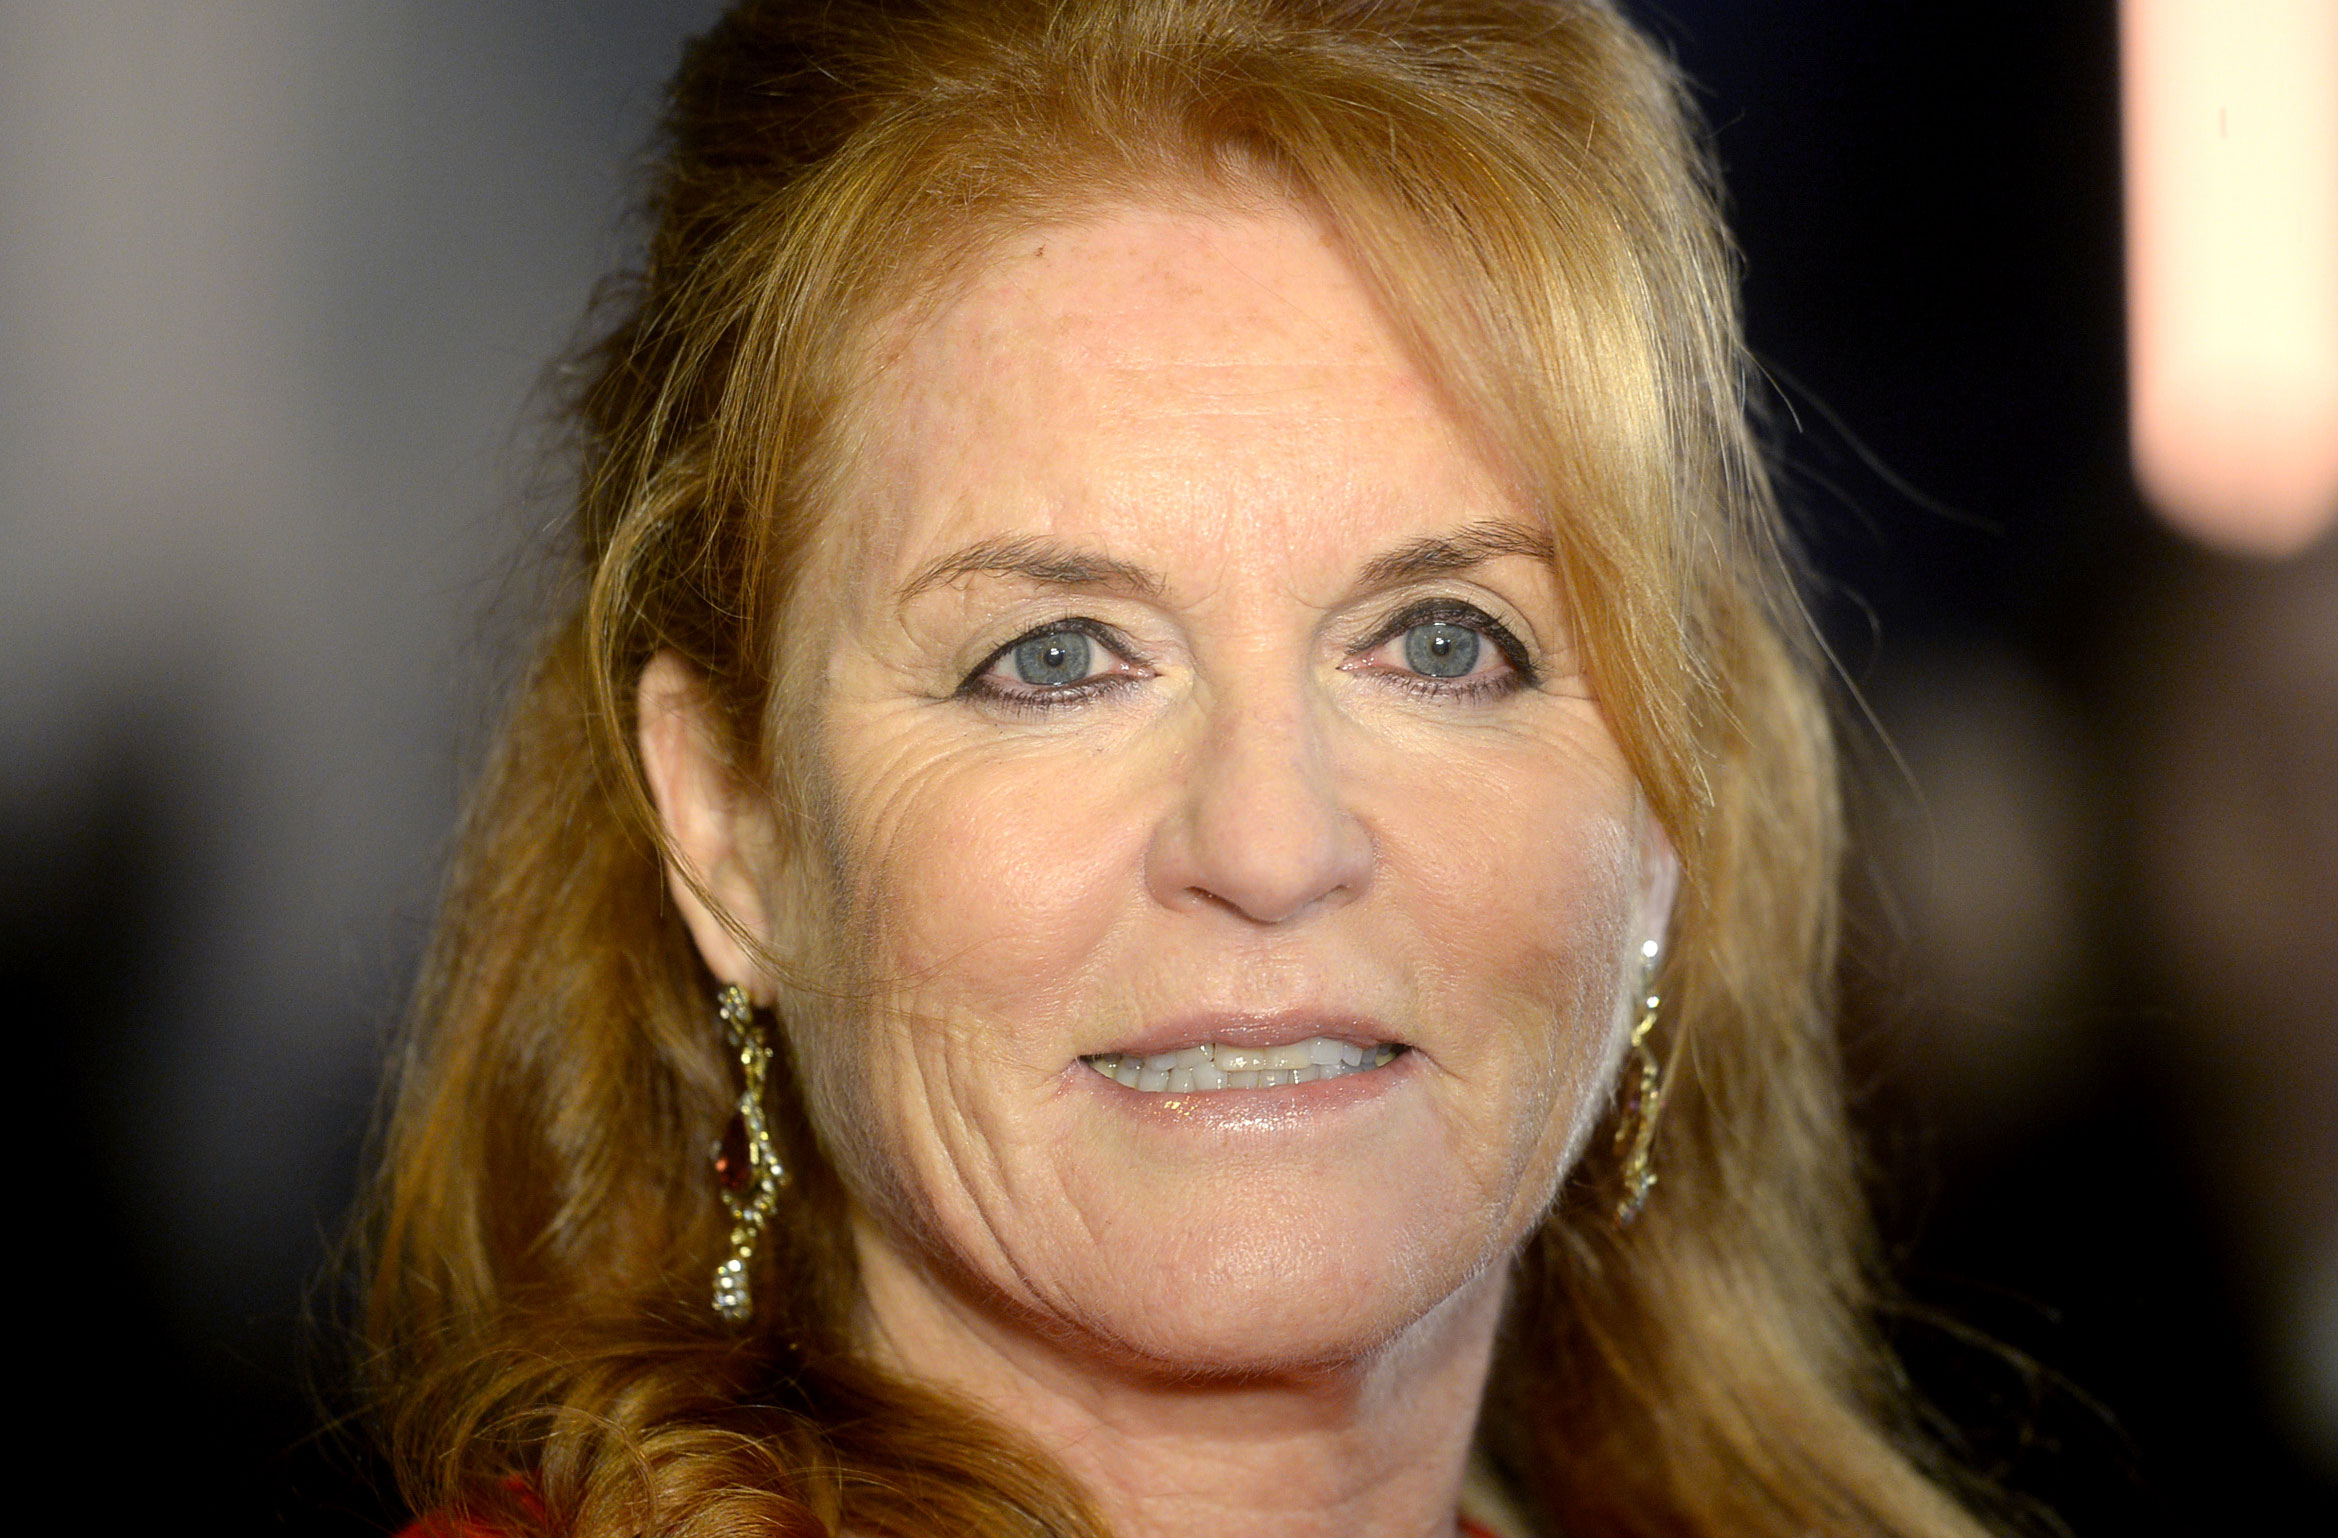 The Duchess of York opens up about cosmetic procedures she's had done ahead of her 60th birthday